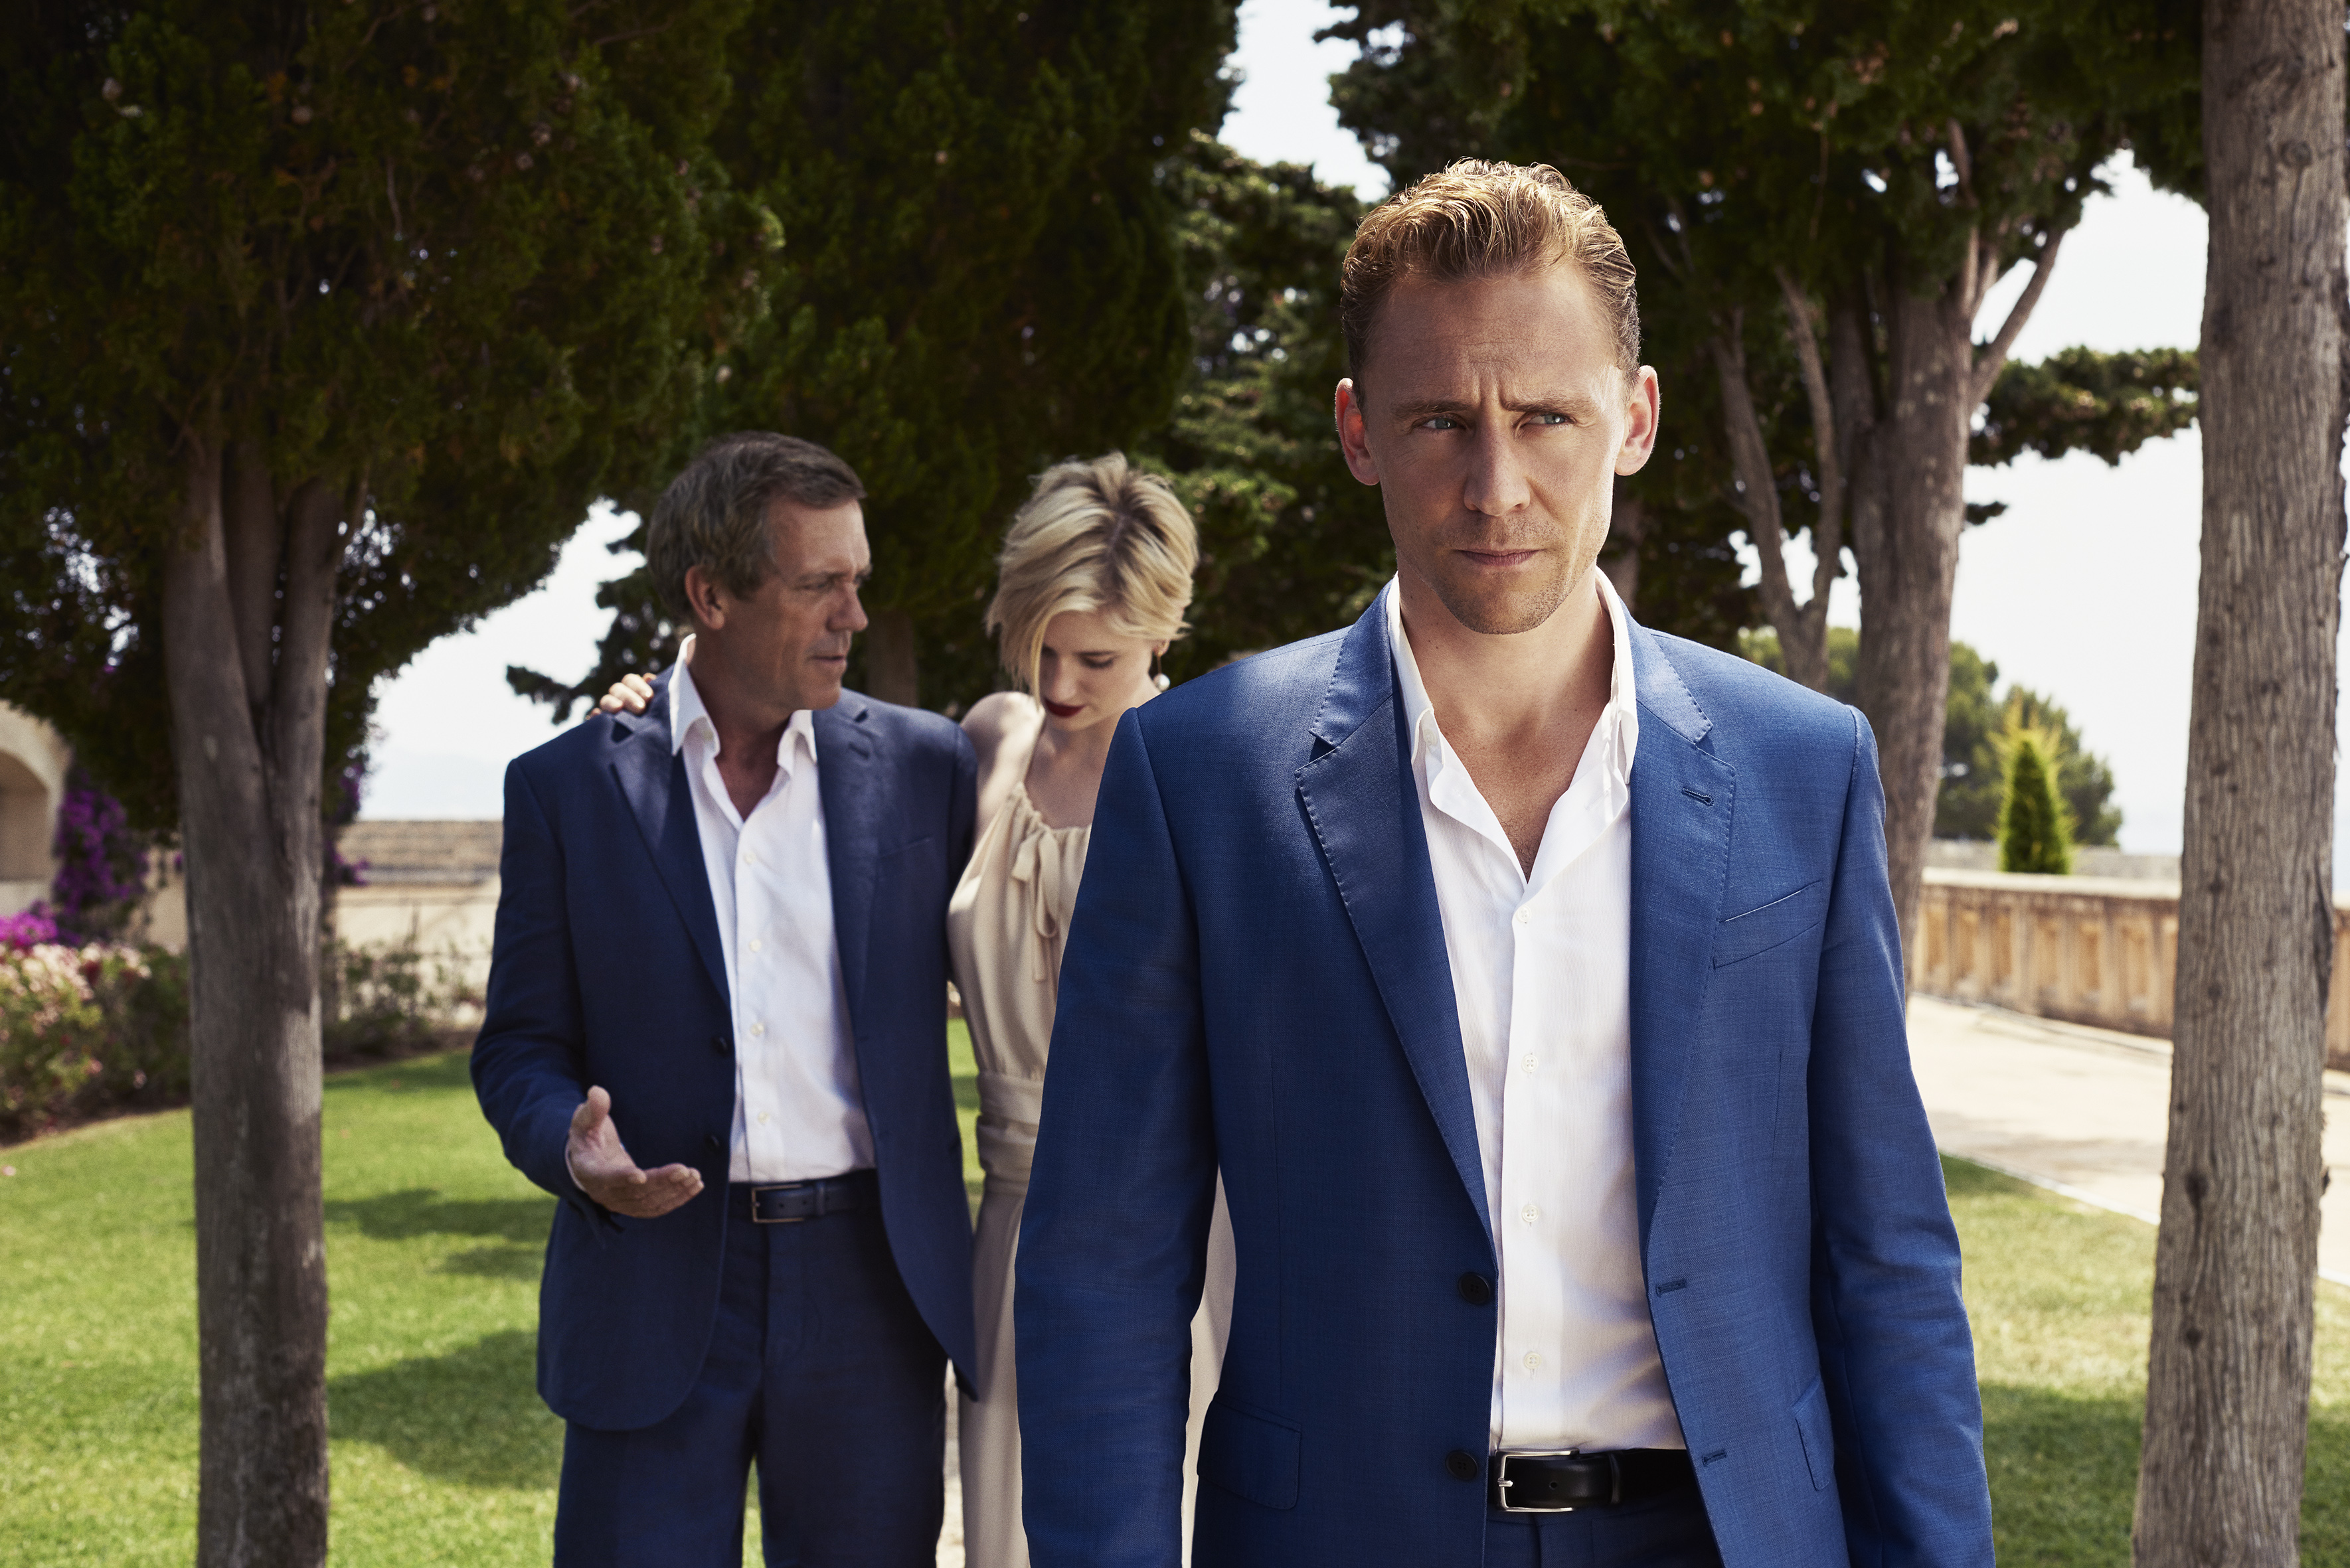 The Night Manager season 2 is actually happening